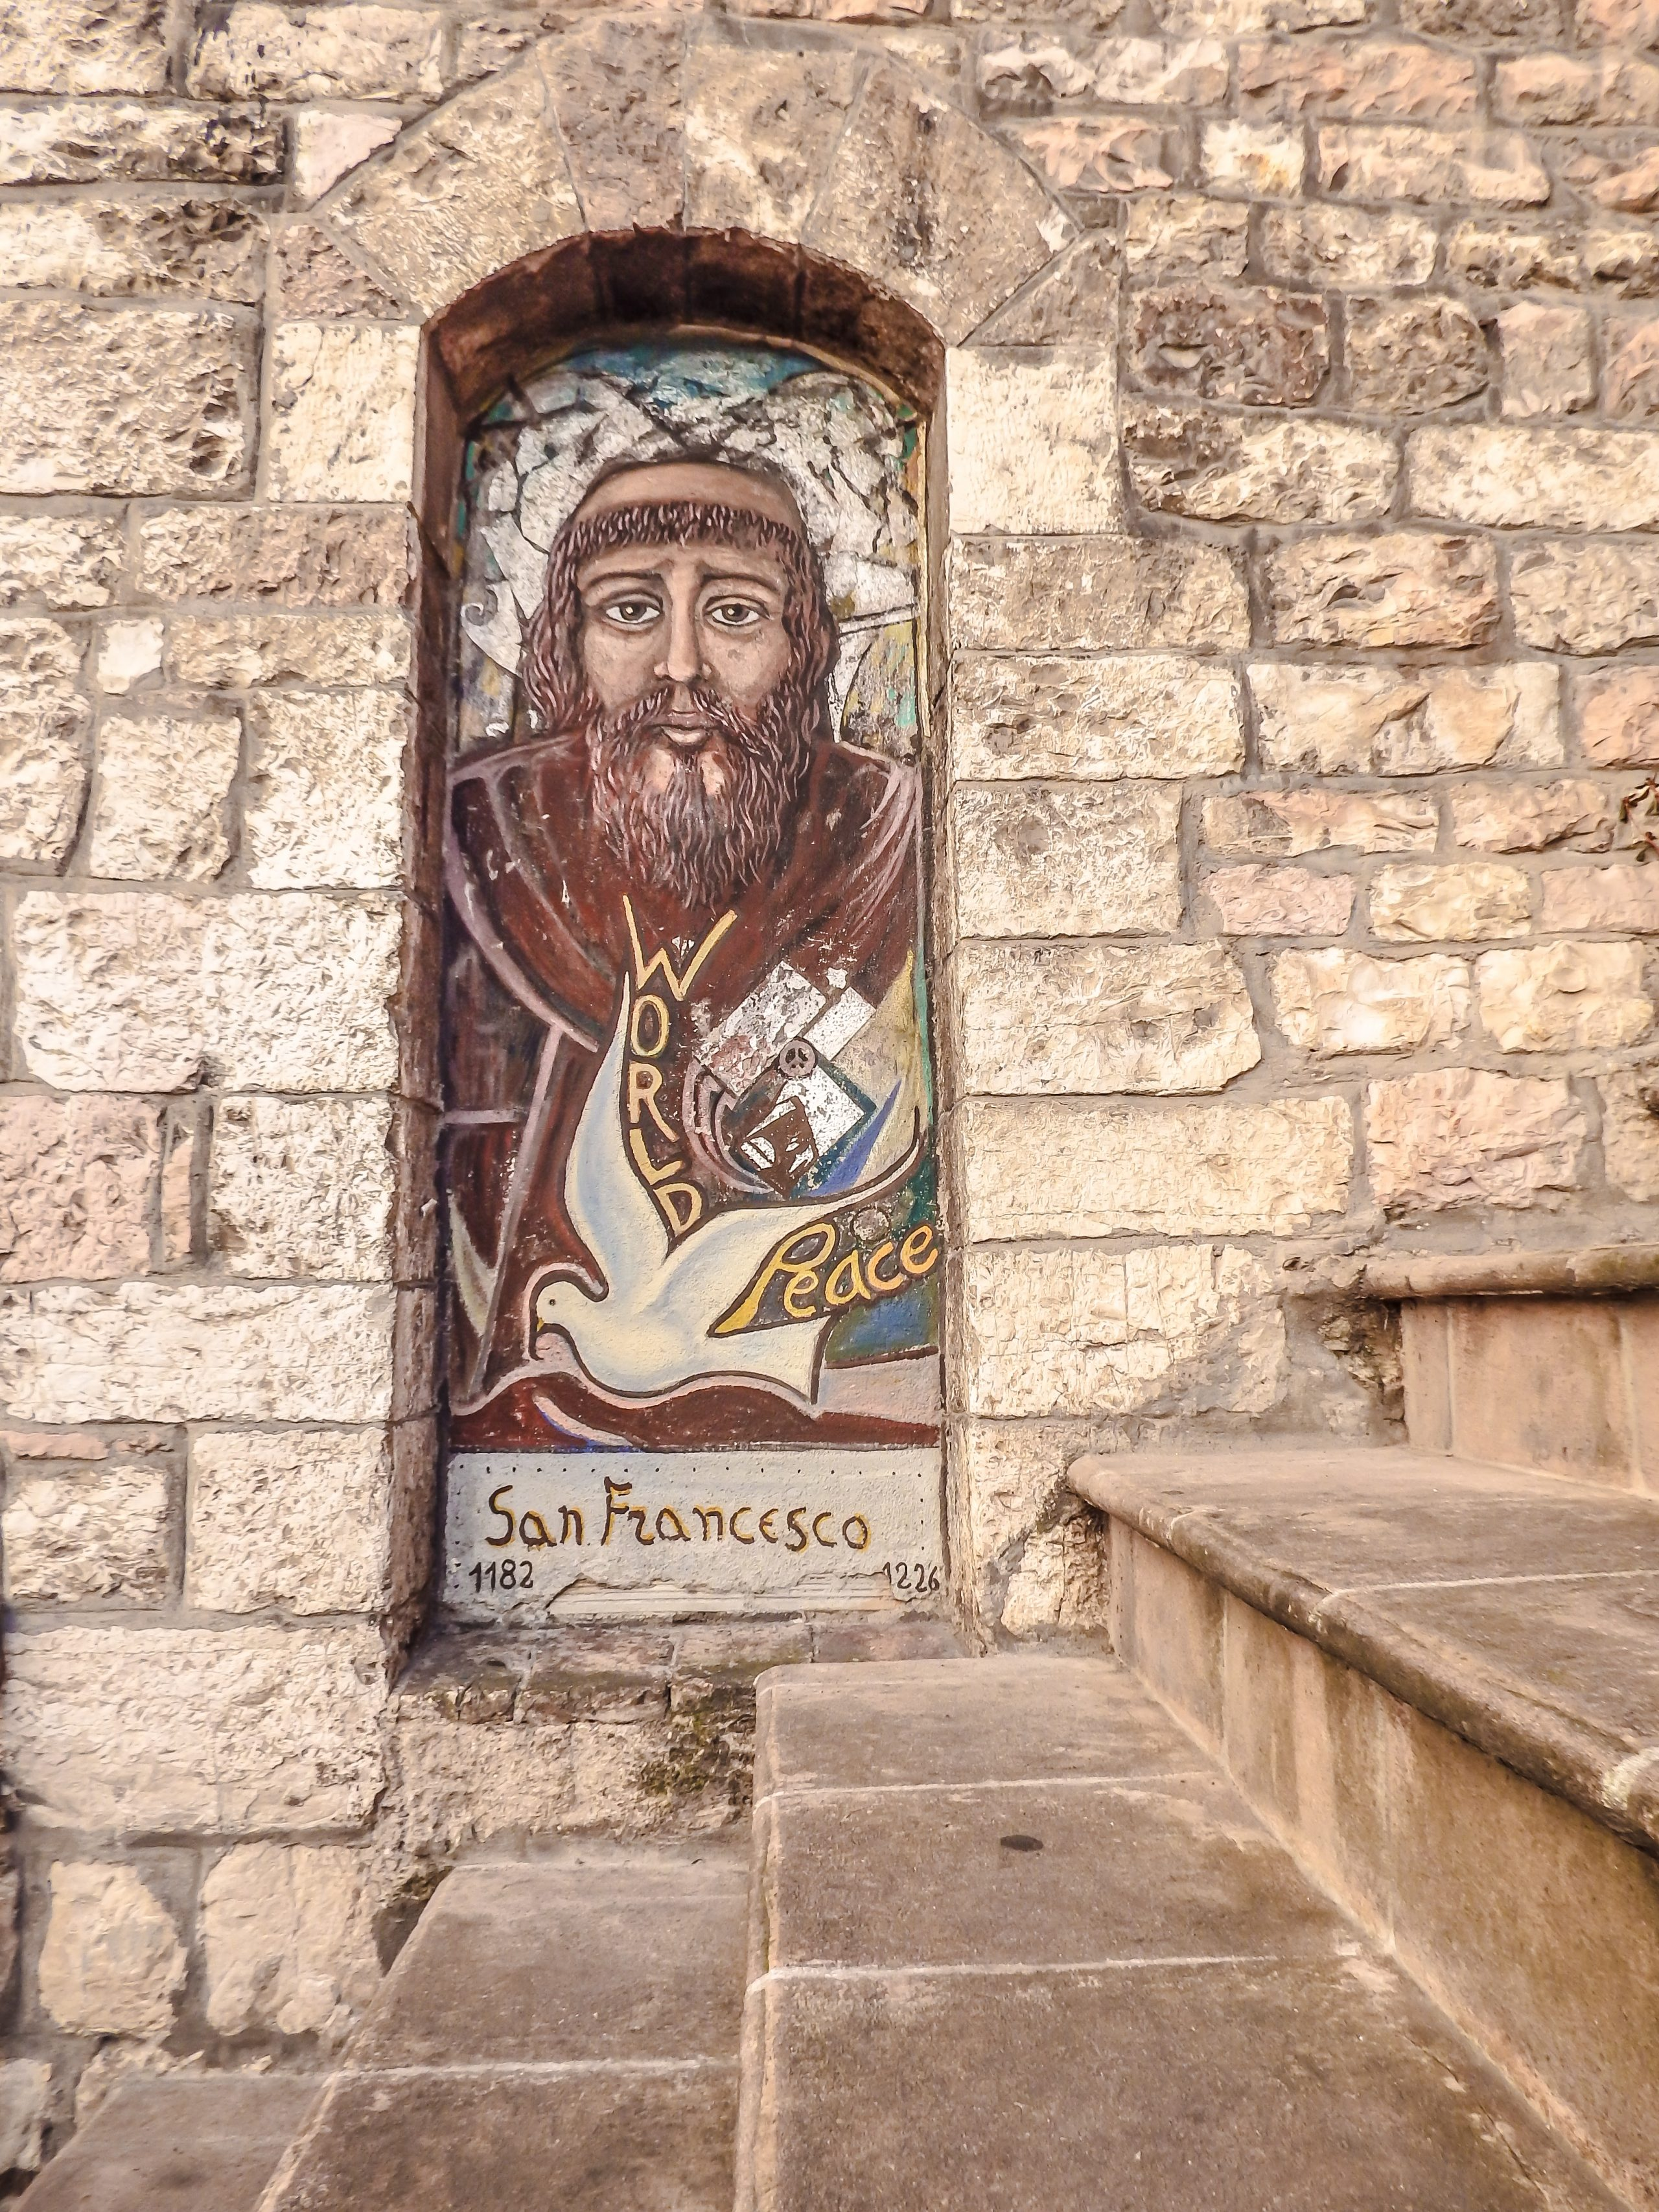 Exploring the medieval streets and history of St. Francis in this small Umbrian town during a day trip to Assisi, Italy